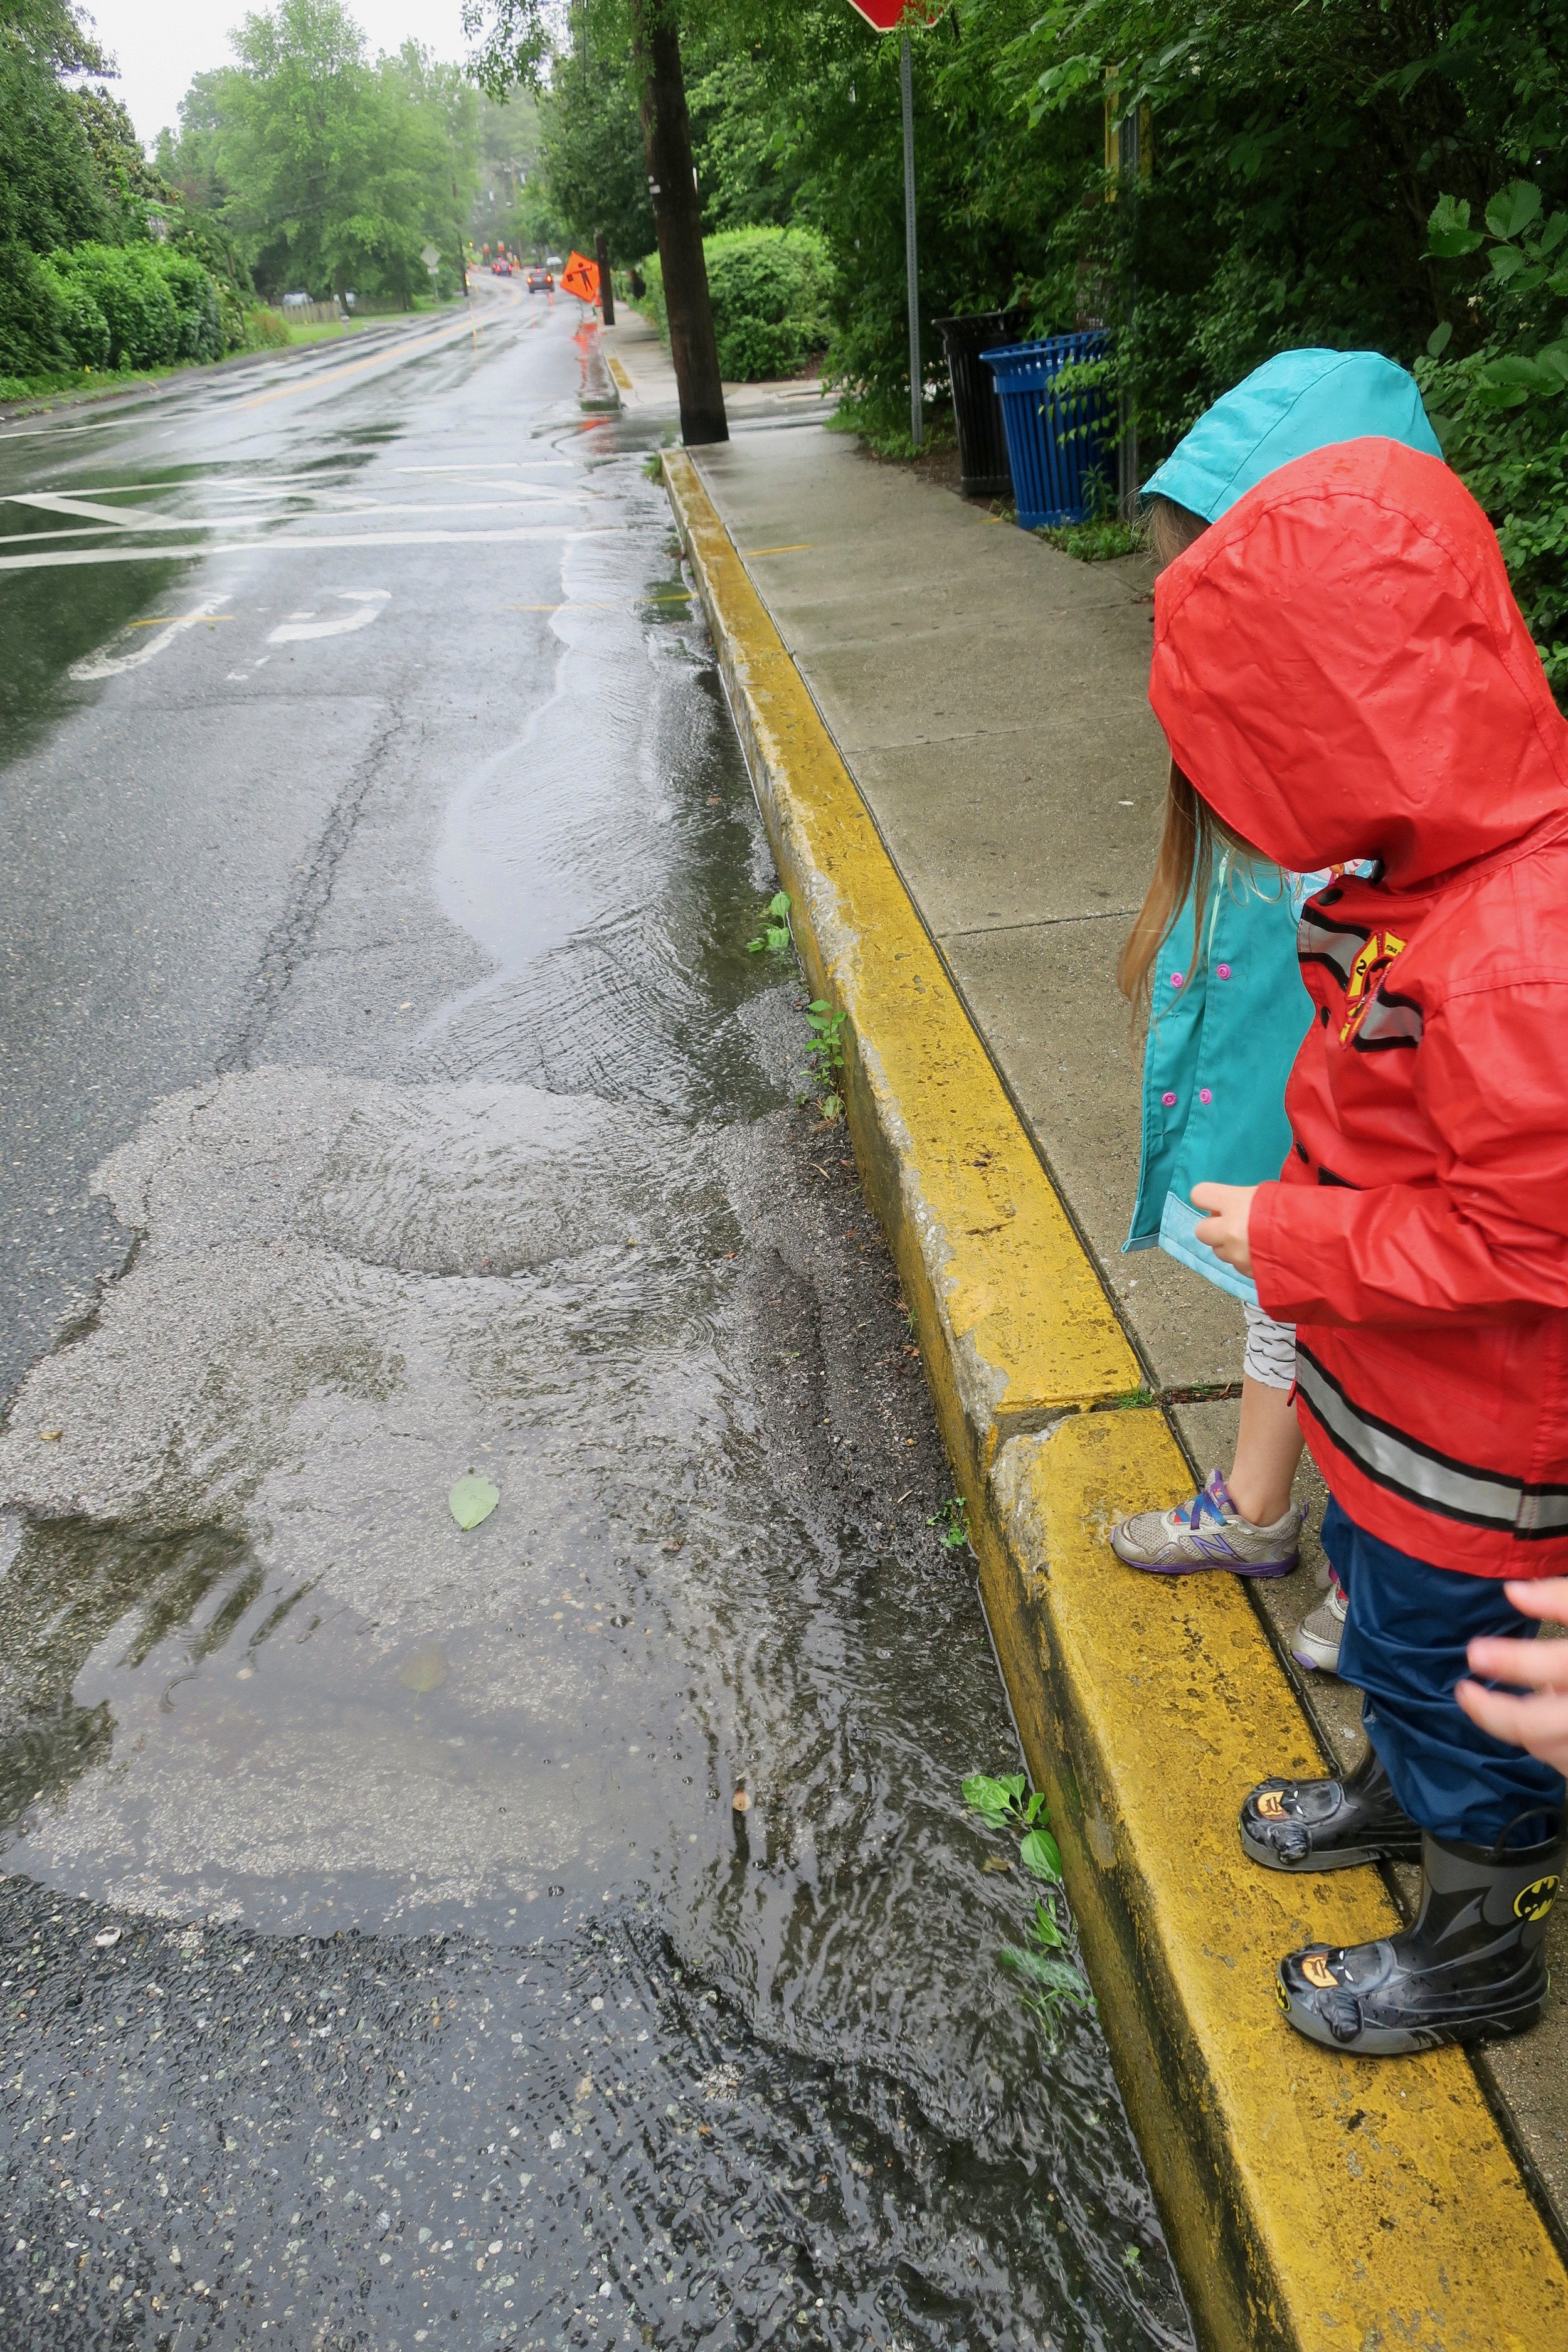 Training eye and head movement. The children race leaves in the rain along the gutter in front of the school. Bonus points because the rain runs left to right and then down the hill. Nature brings us amazing presents every day.